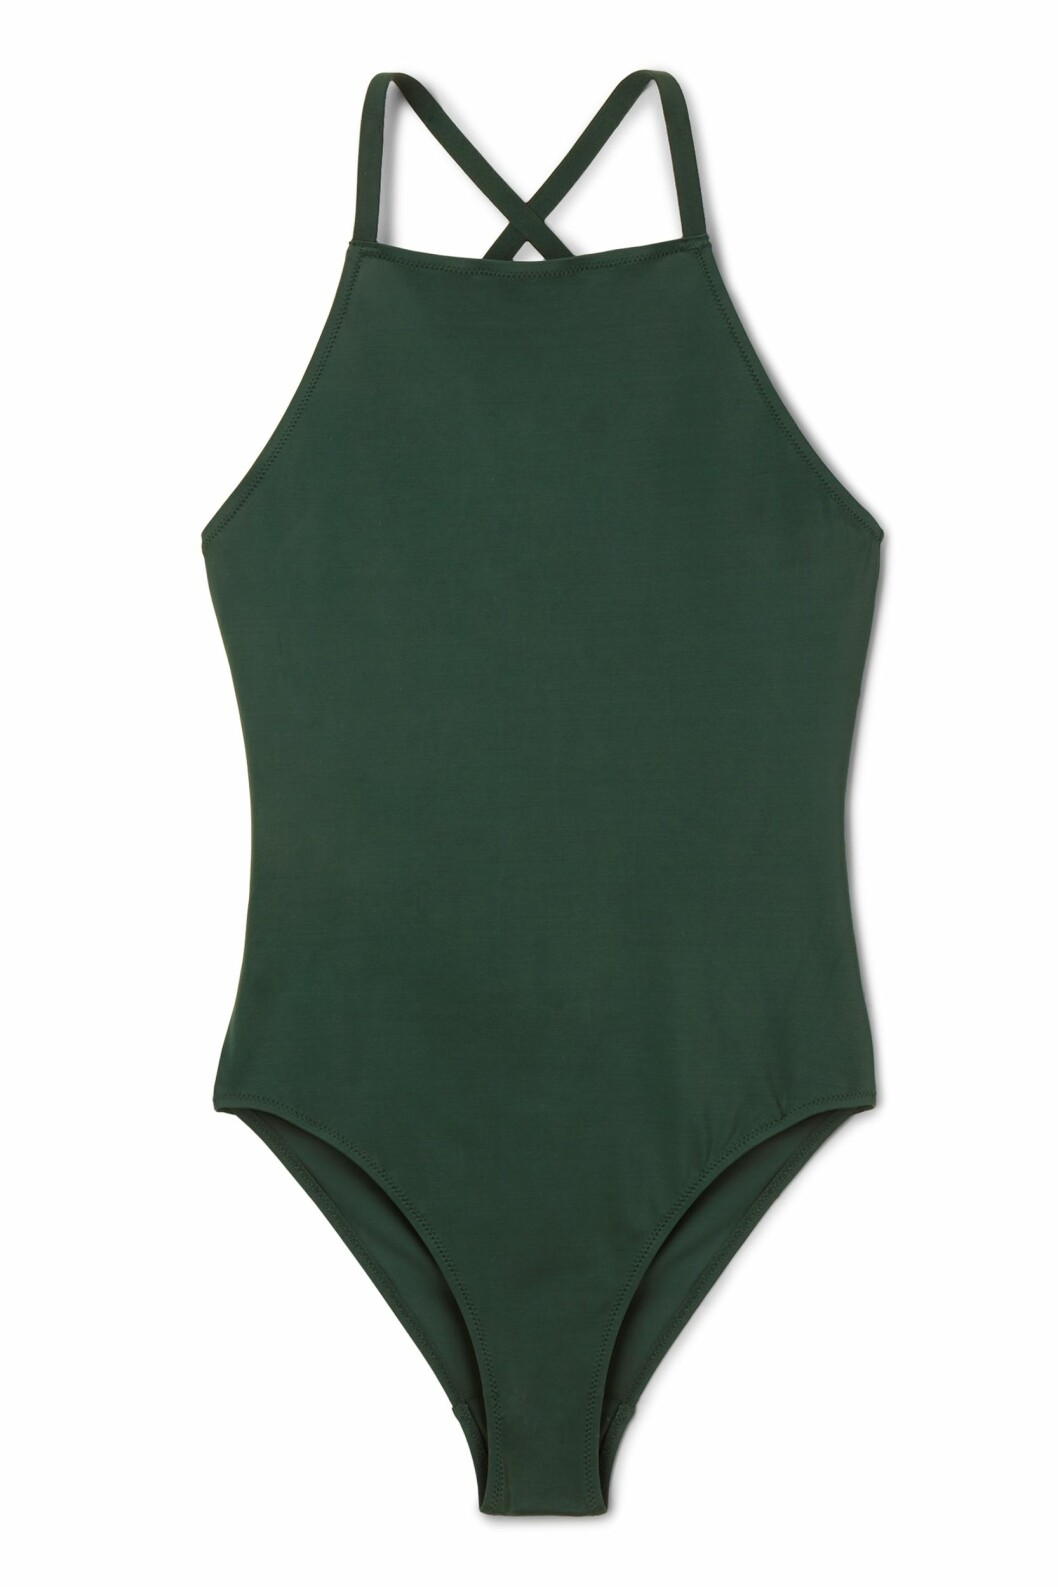 <strong>Badedrakt fra Weekday | kr 250 | http:</strong>//shop.weekday.com/gb/Womens_shop/Swimwear/All/Atlantis_Swimsuit/8278058-11115600.1#c-47958#Rel?PC=